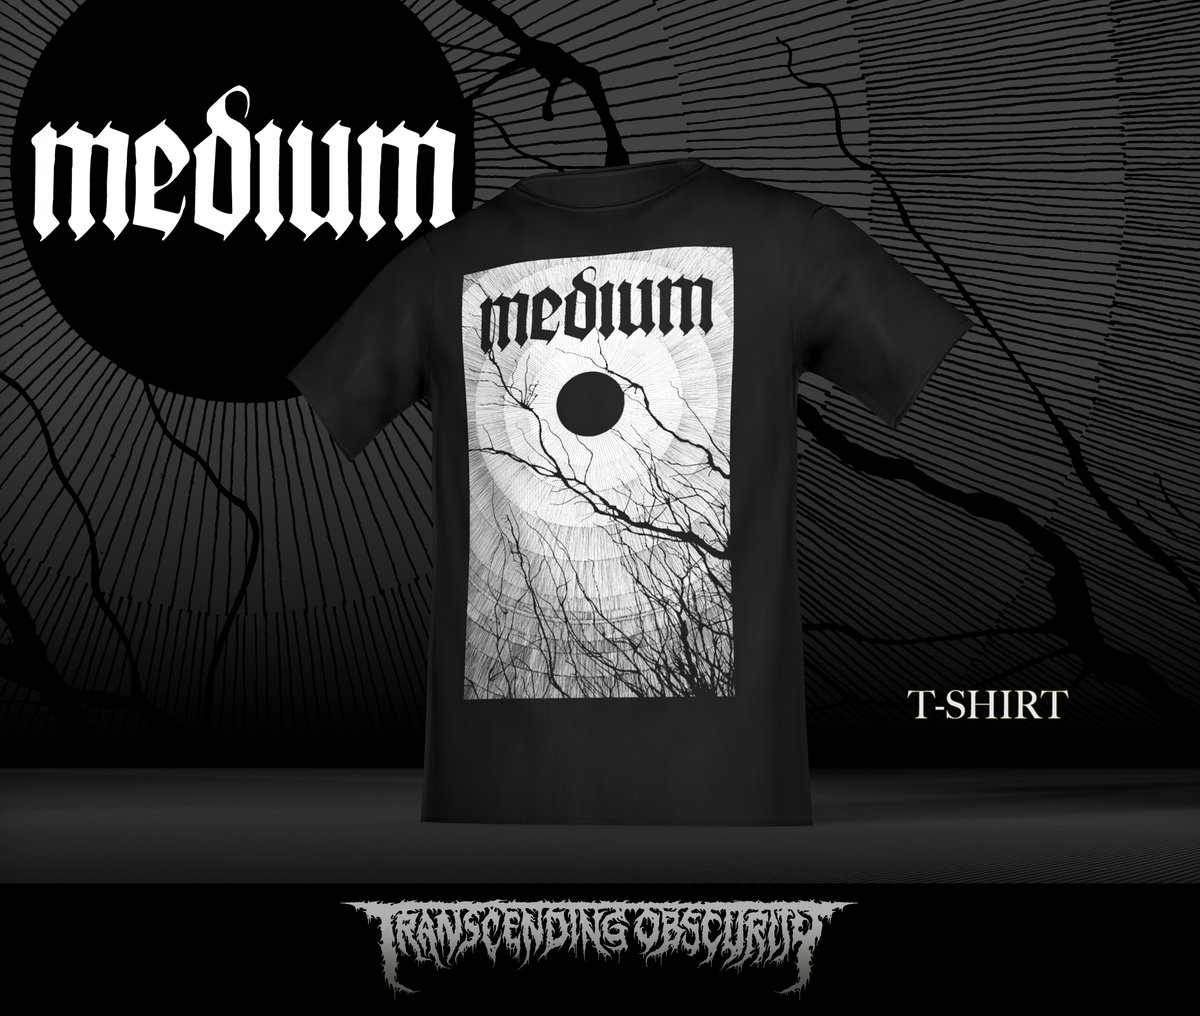 MEDIUM Album Artwork T-shirt (Limited to 20)